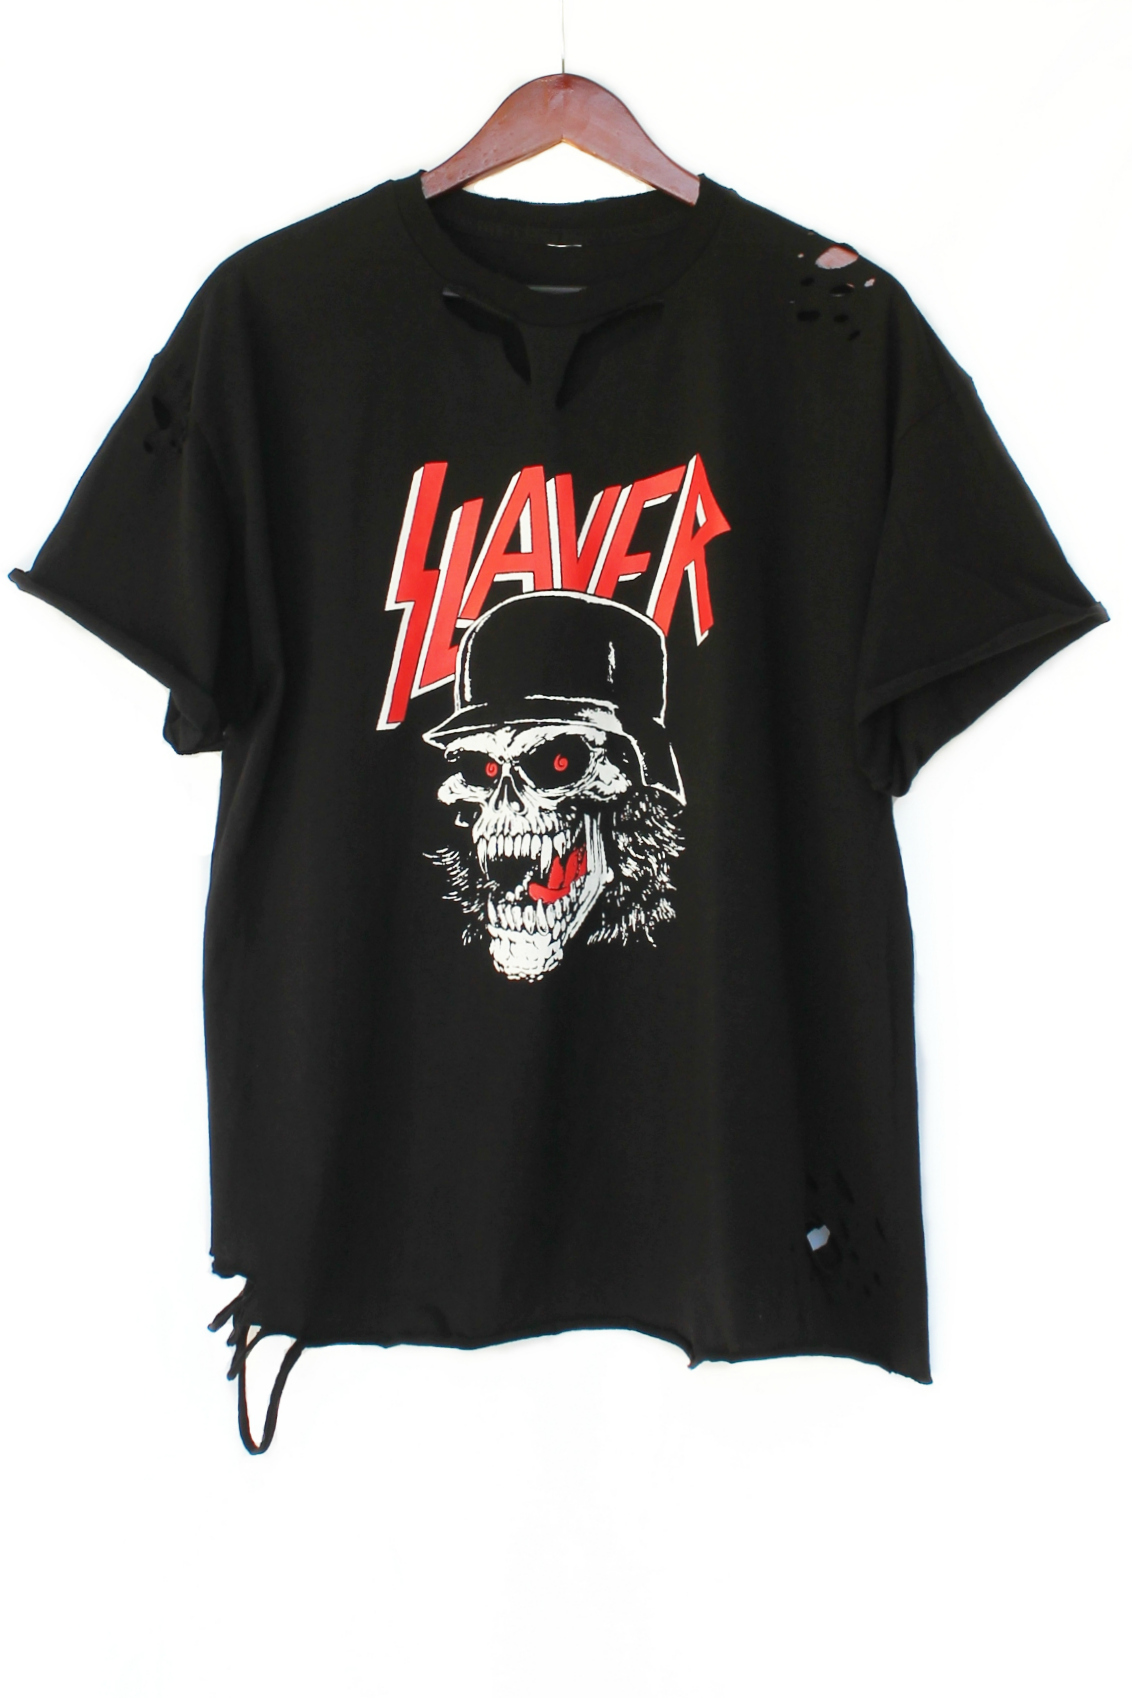 Slayer T-Shirt | Just Vu